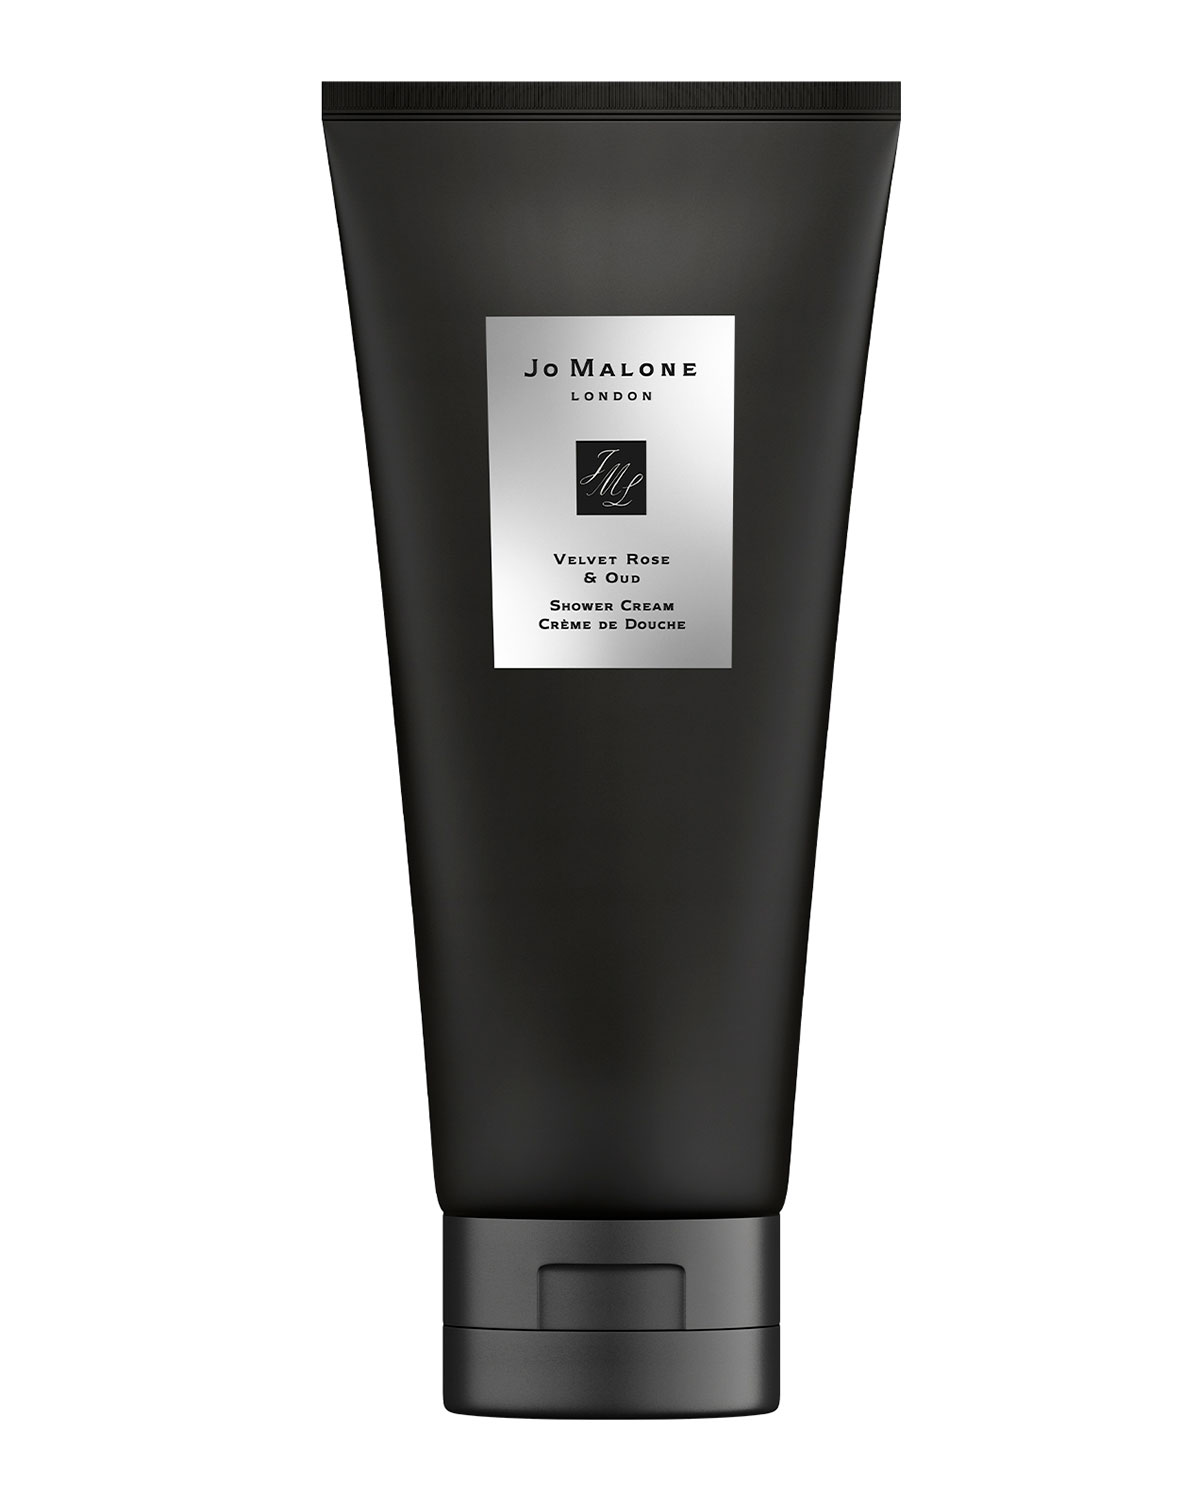 Jo Malone London 1 oz. Velvet Rose Oud Shower Cream